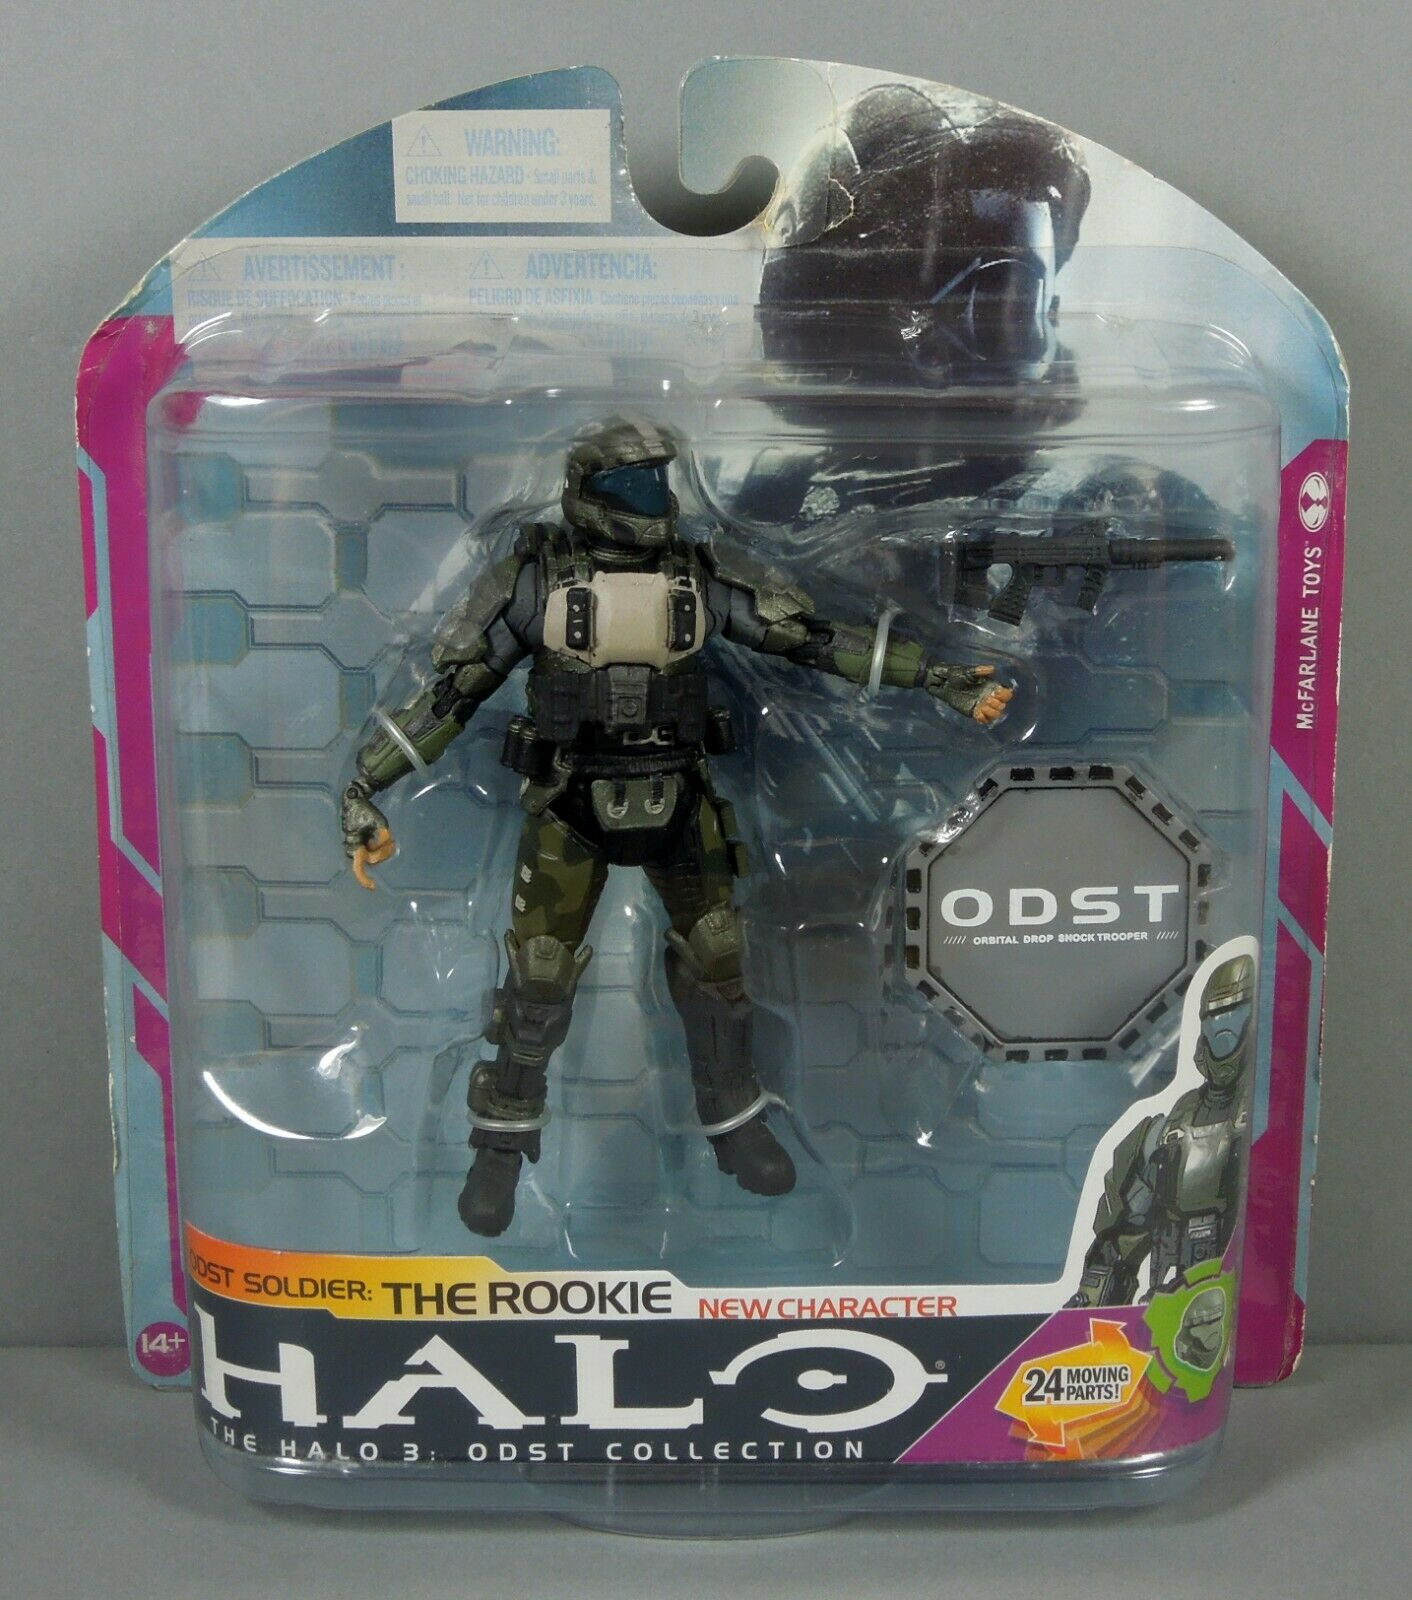 Halo 2009 Wave 3 - Series 6 ODST Soldier The Rookie   Mcfarlane Toys   Microsoft